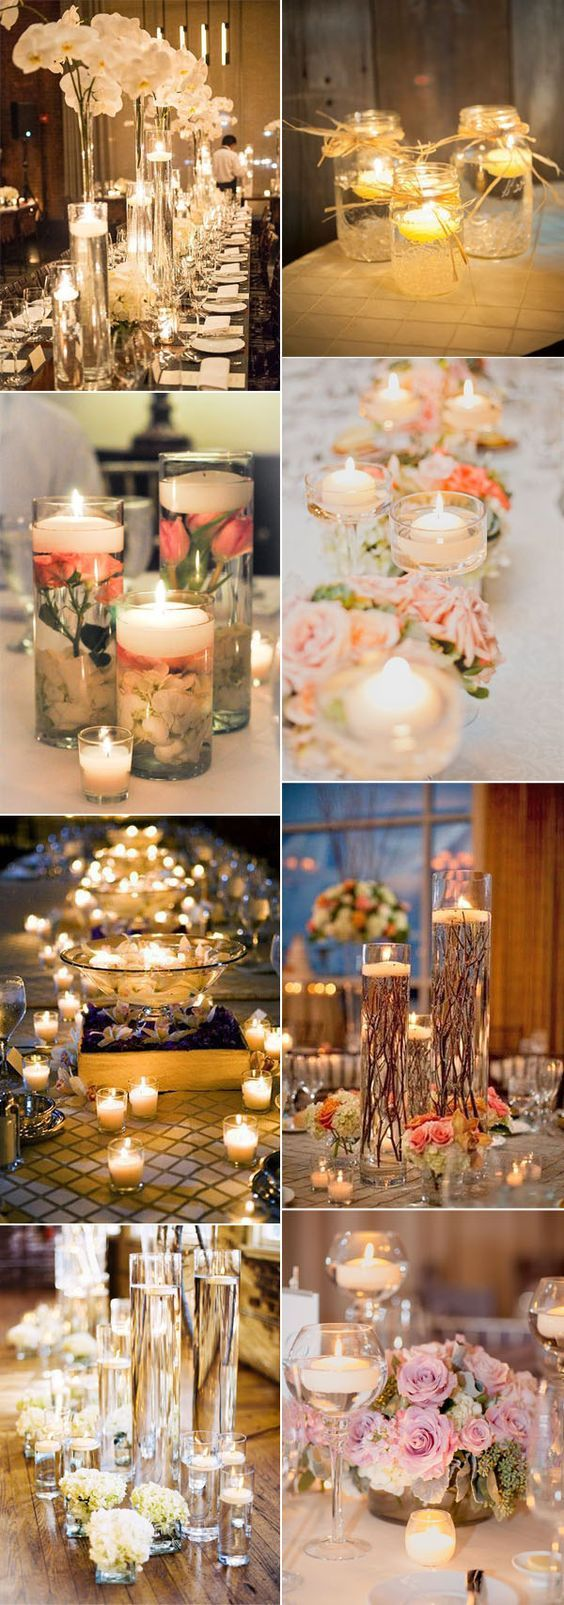 Wedding decoration ideas peach   Fancy Candlelight Ideas to Add Romance to Your Weddings